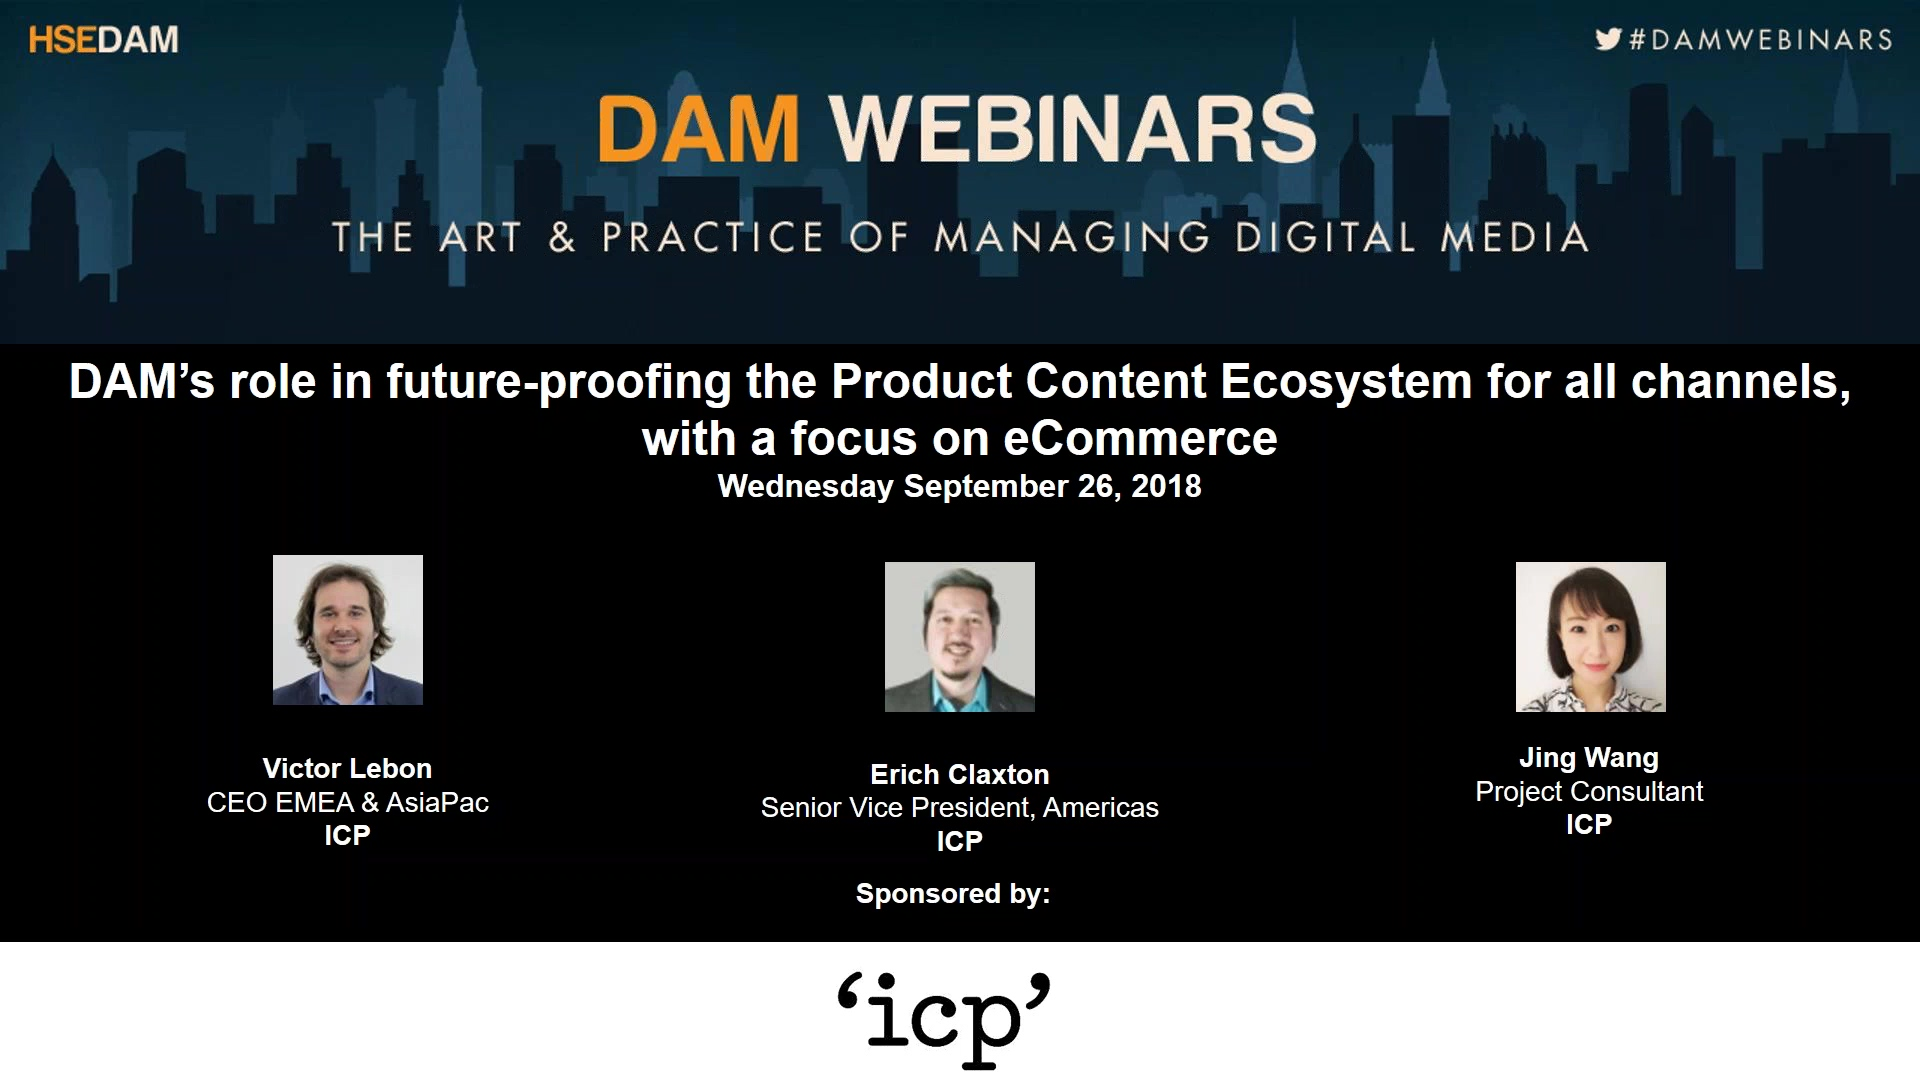 3) 26 September 2018 - DAM's role in future-proofing the Product Content Ecosystem for all channels,